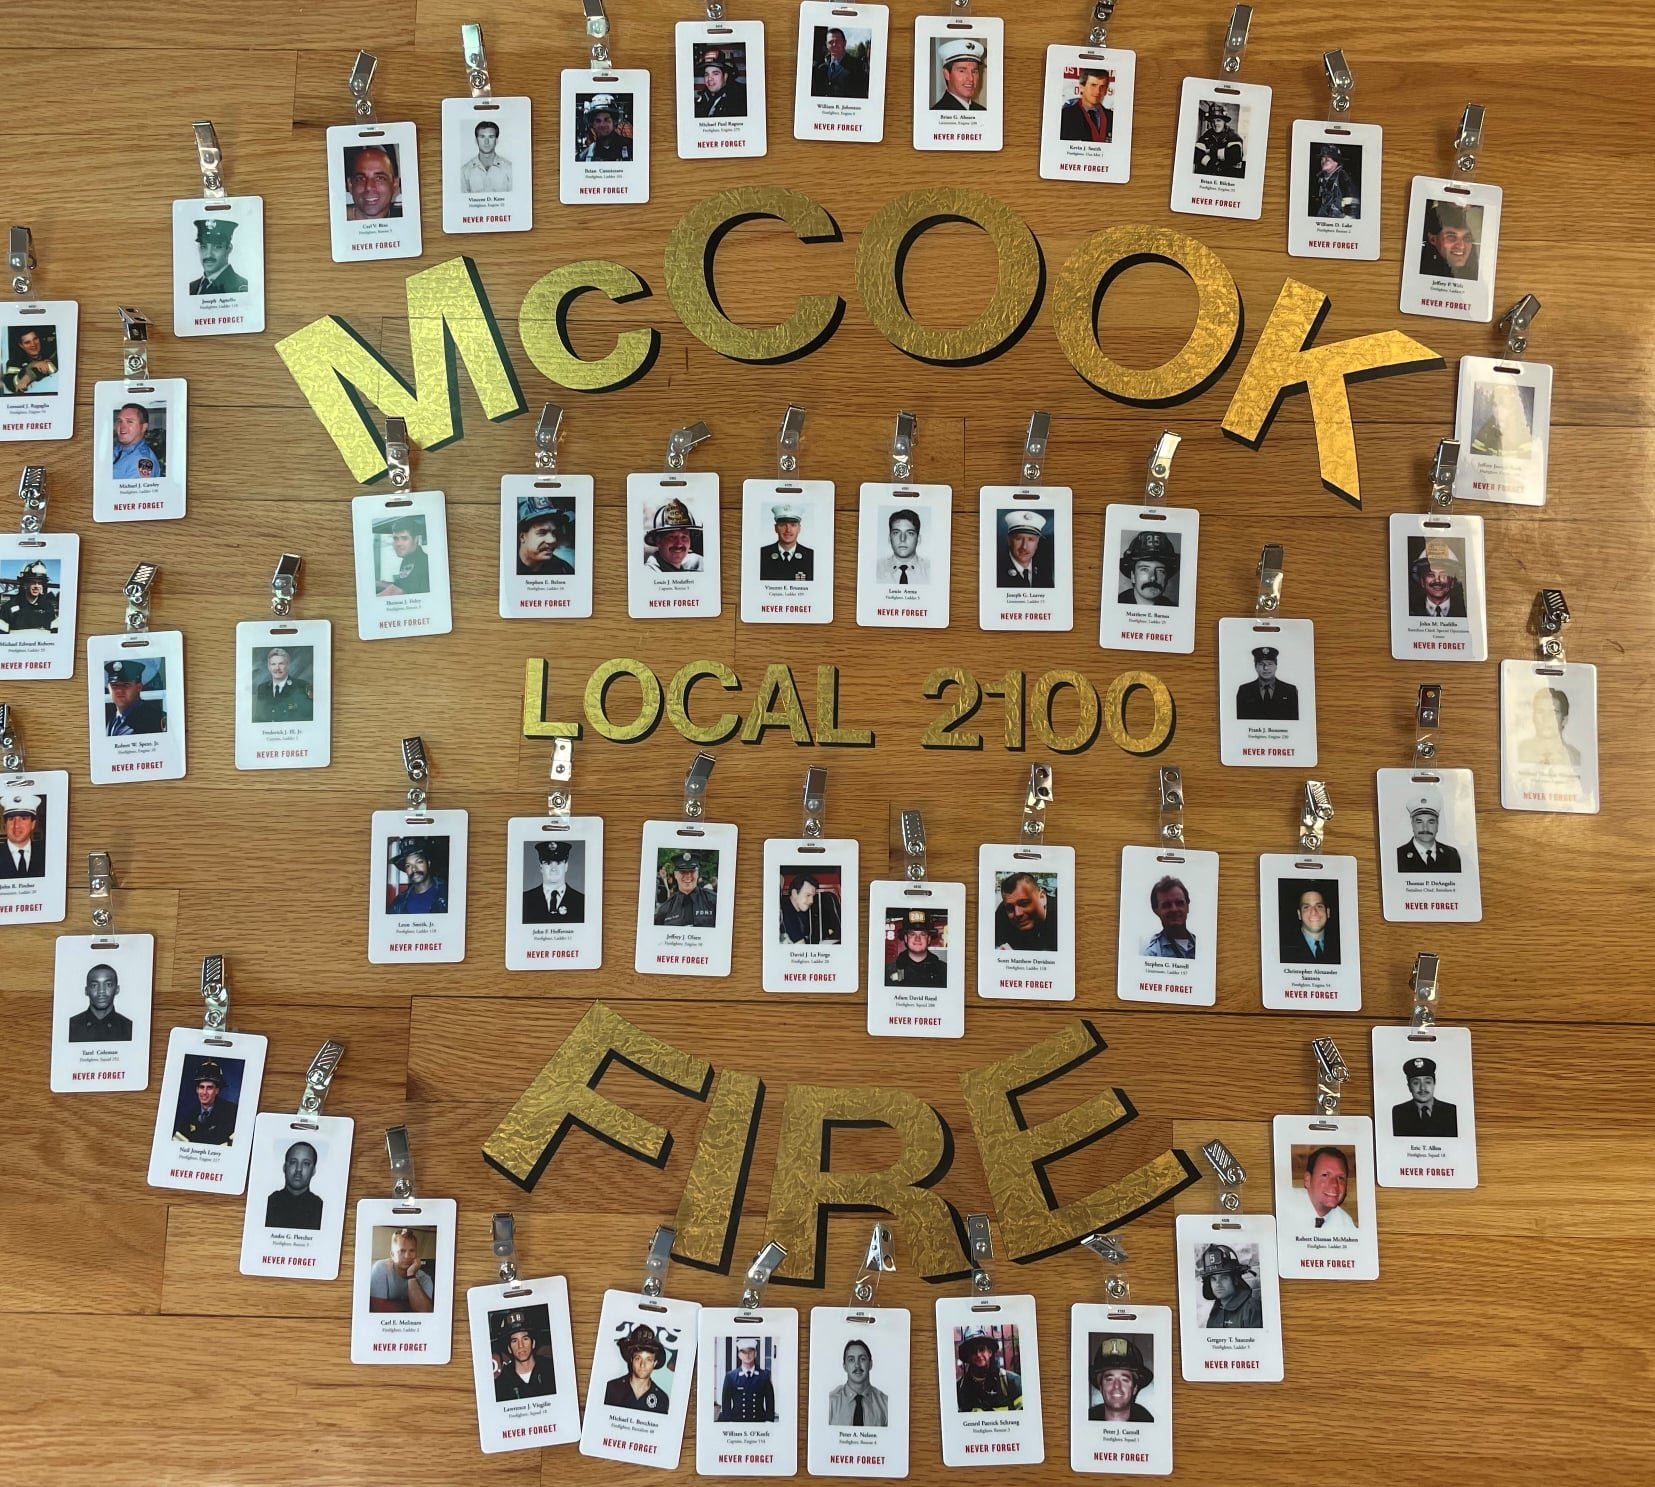 McCook Fire Department: Stair climb for 9/11